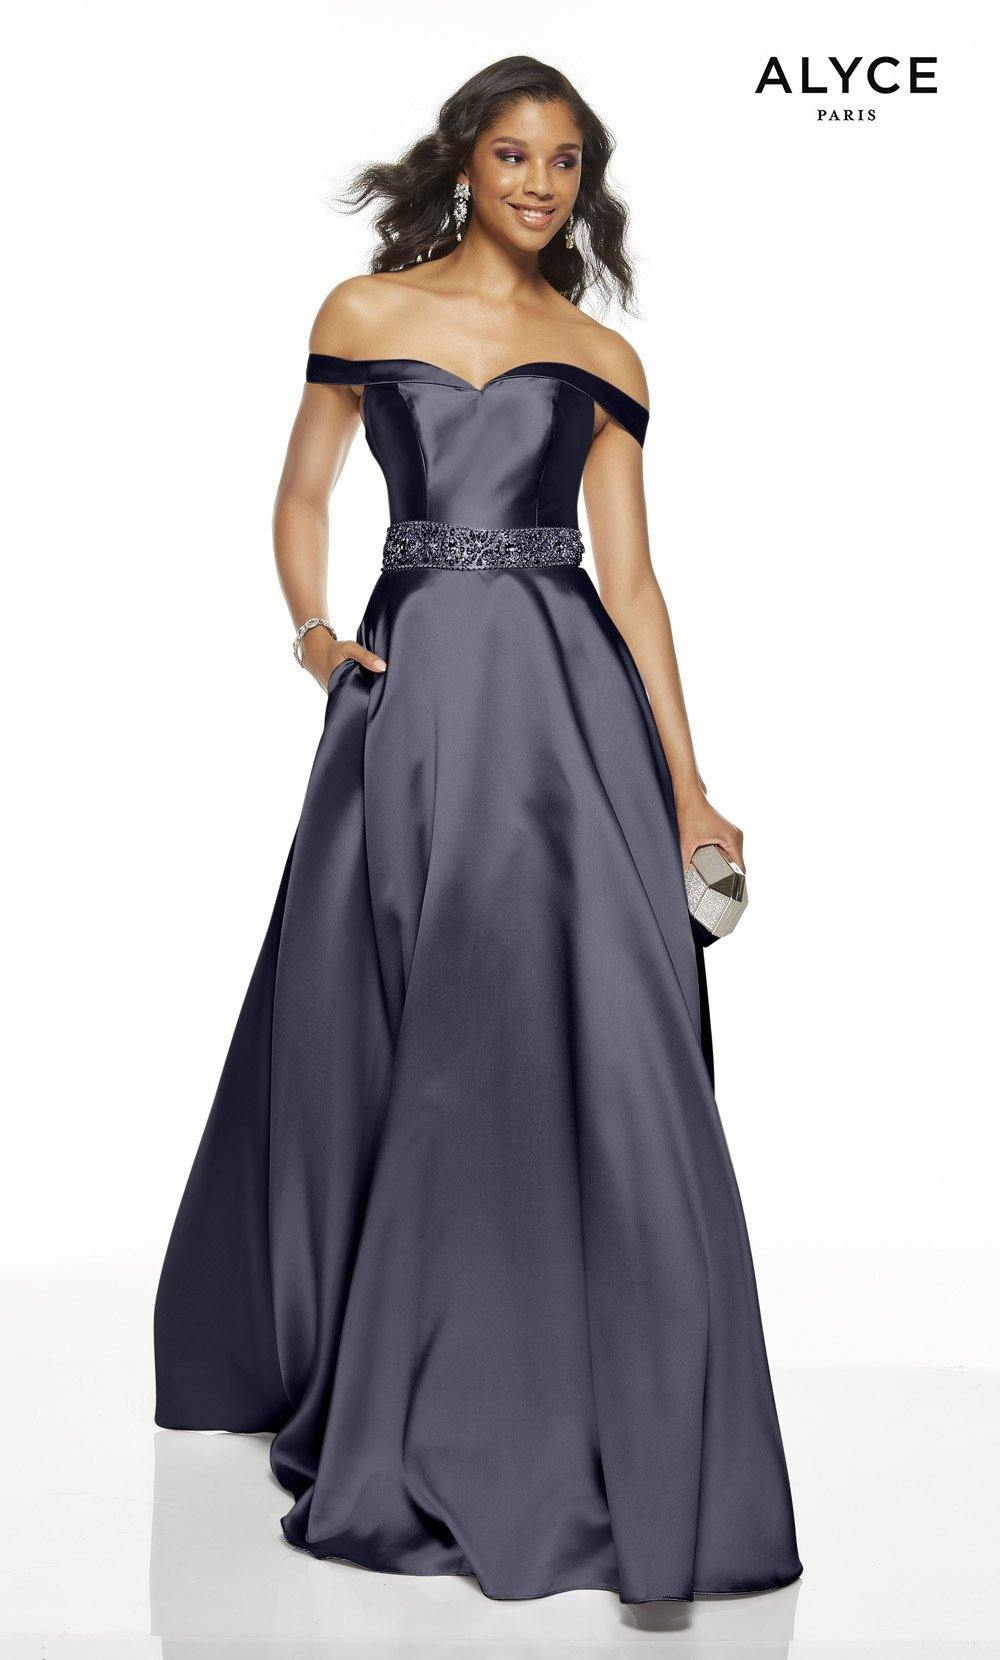 Midnight off the shoulder formal dress with pockets